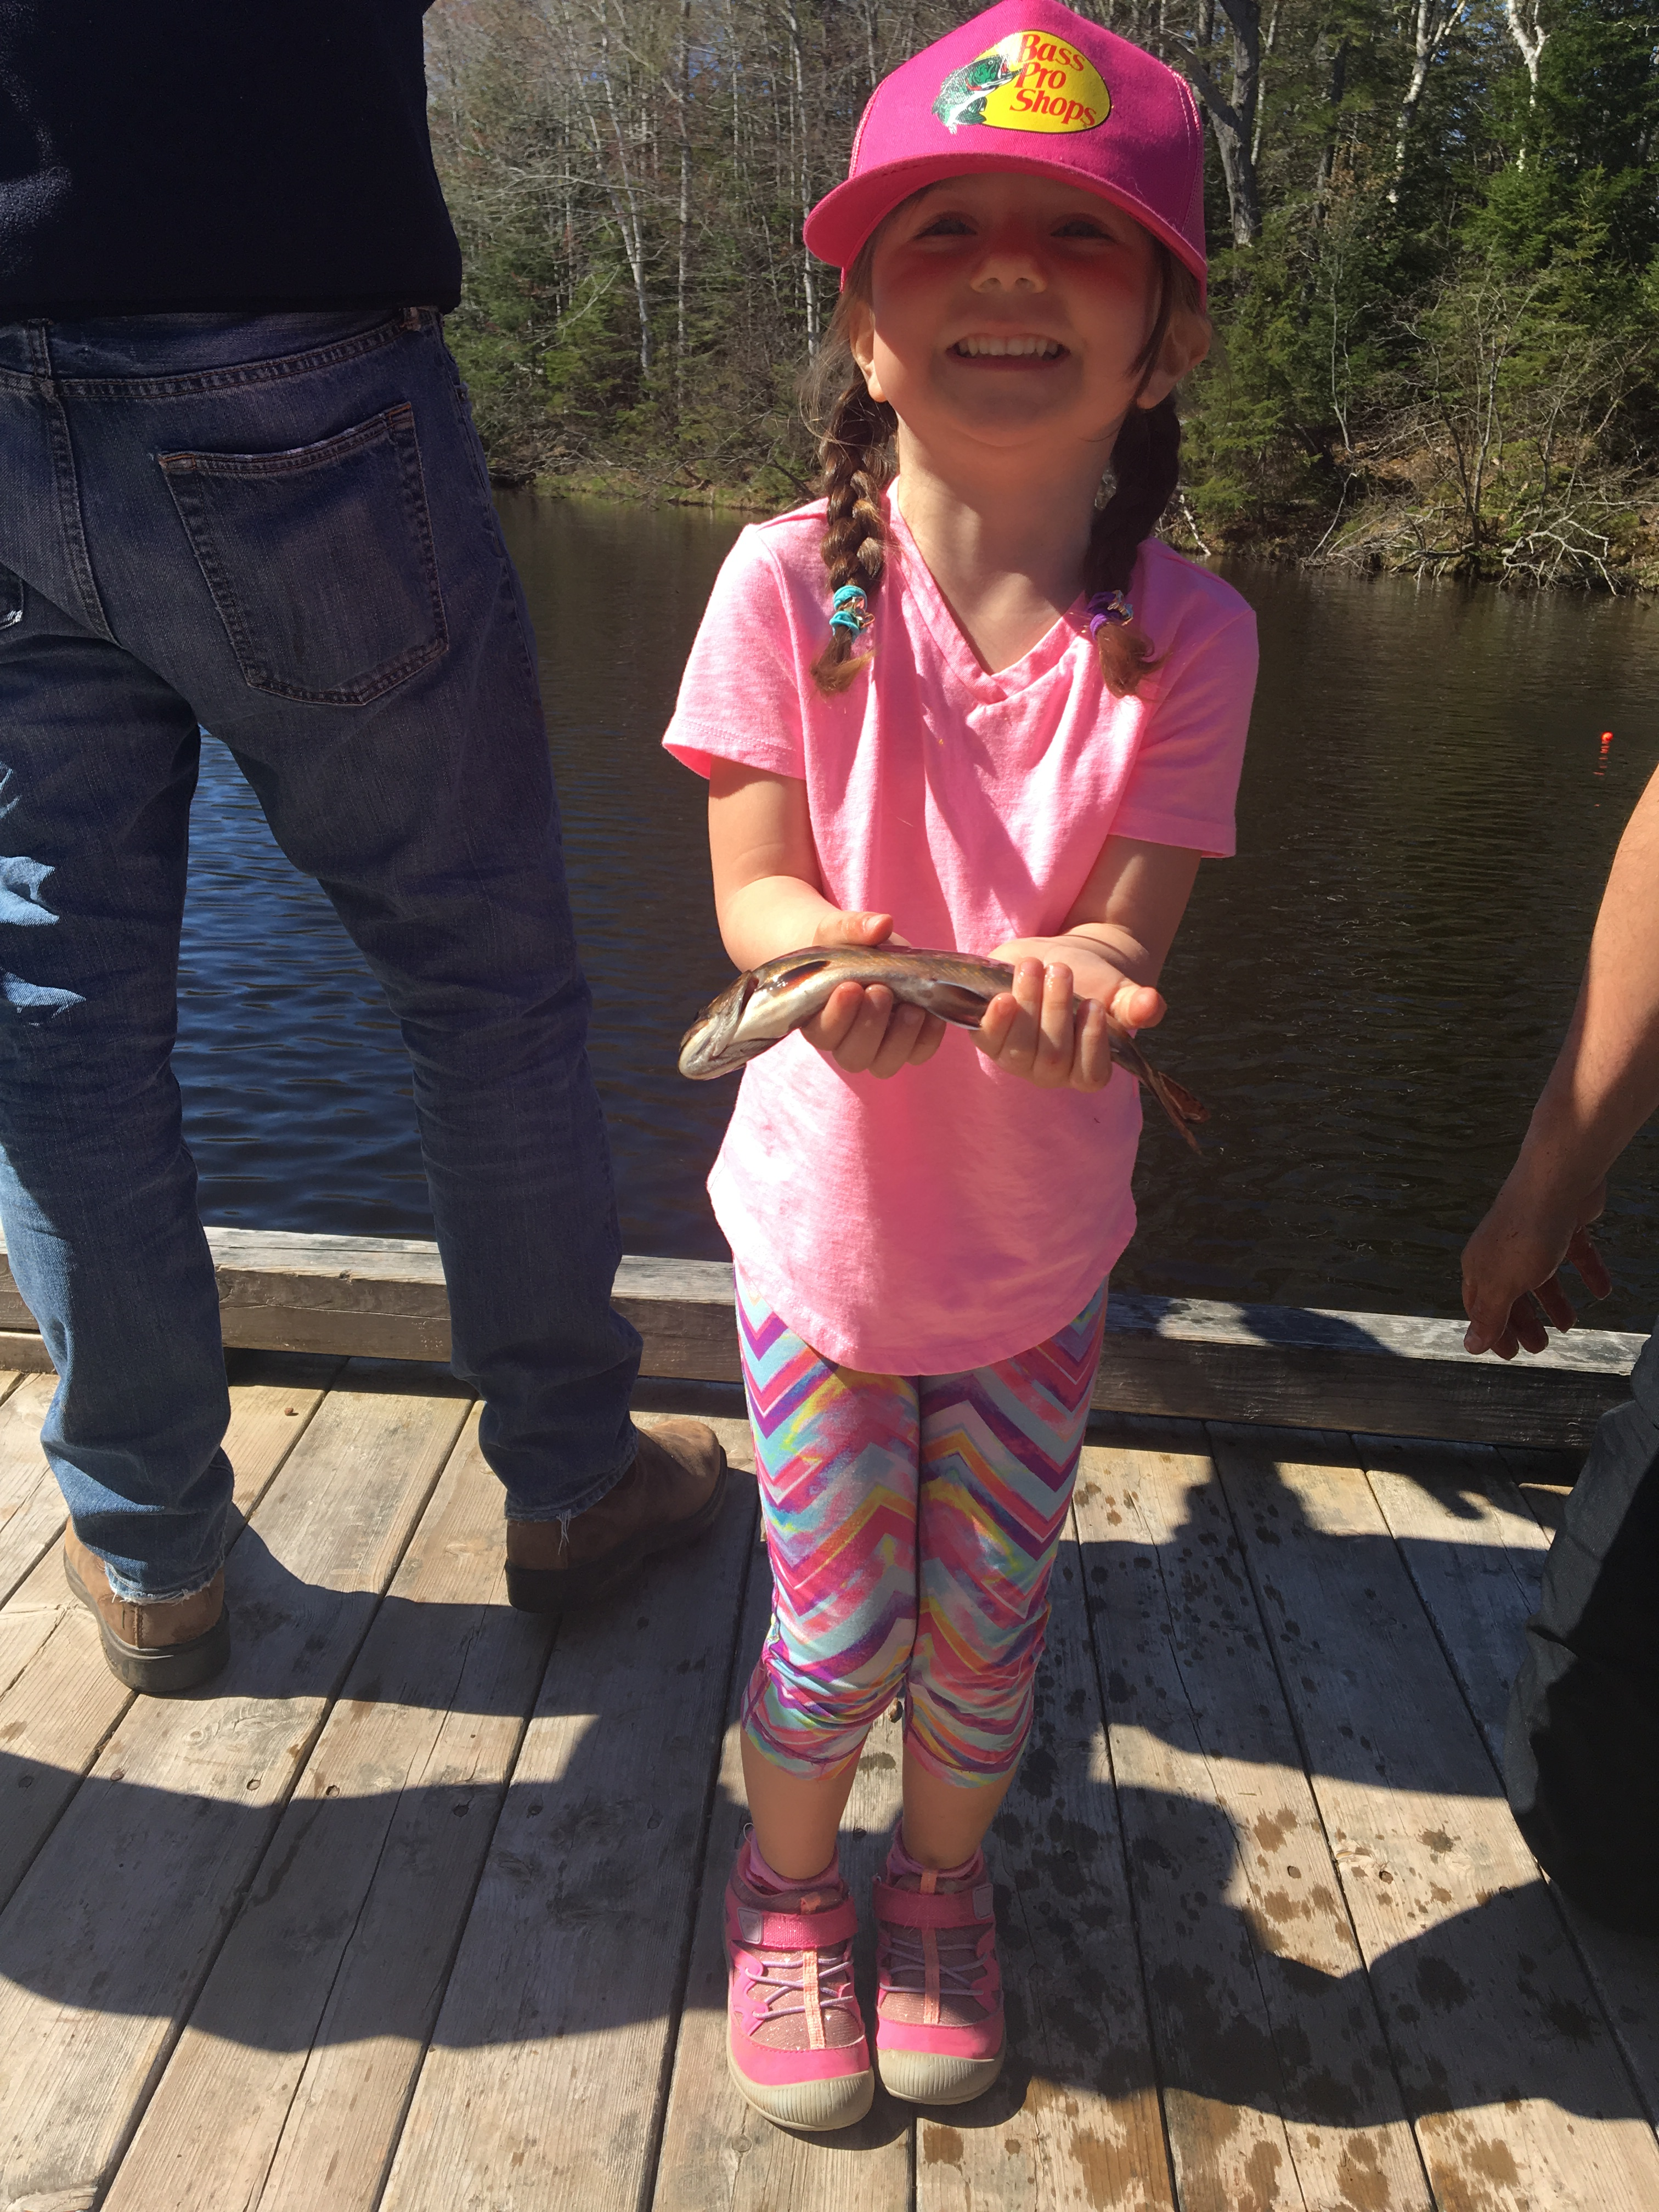 Family Fishing Day at Mooney's Pond